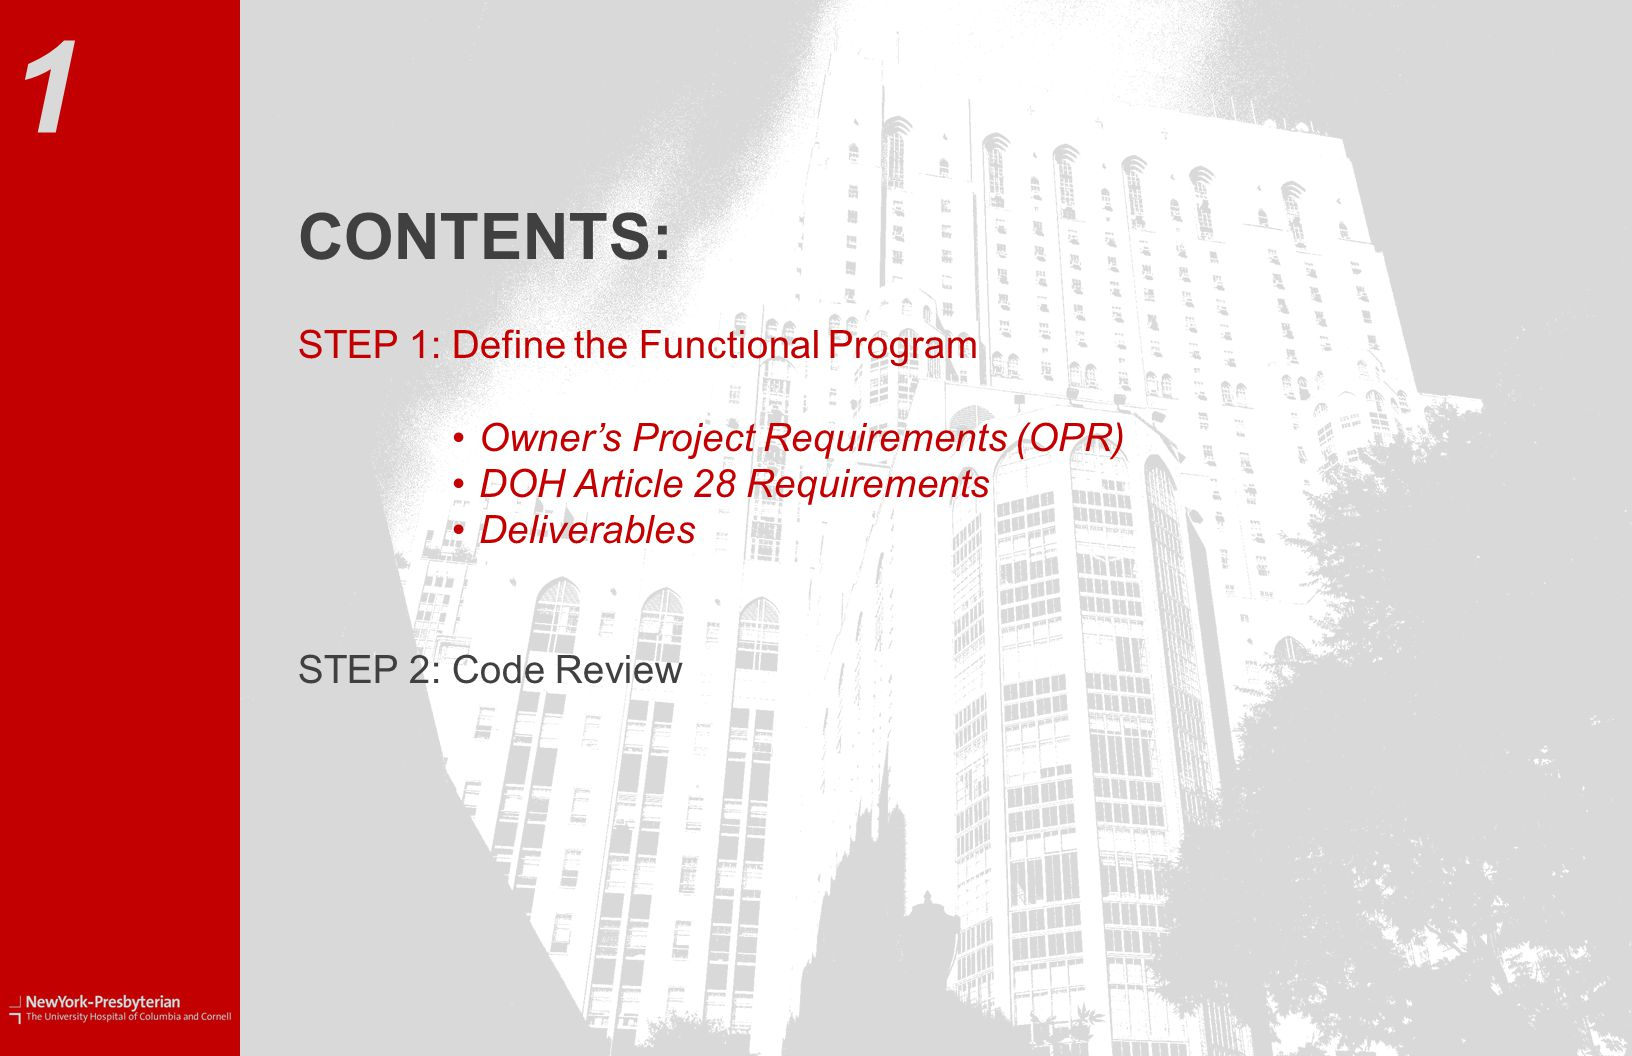 CONTENTS: STEP 1:Define the Functional Program Owner's Project Requirements (OPR) DOH Article 28 Requirements Deliverables STEP 2:Code Review 1